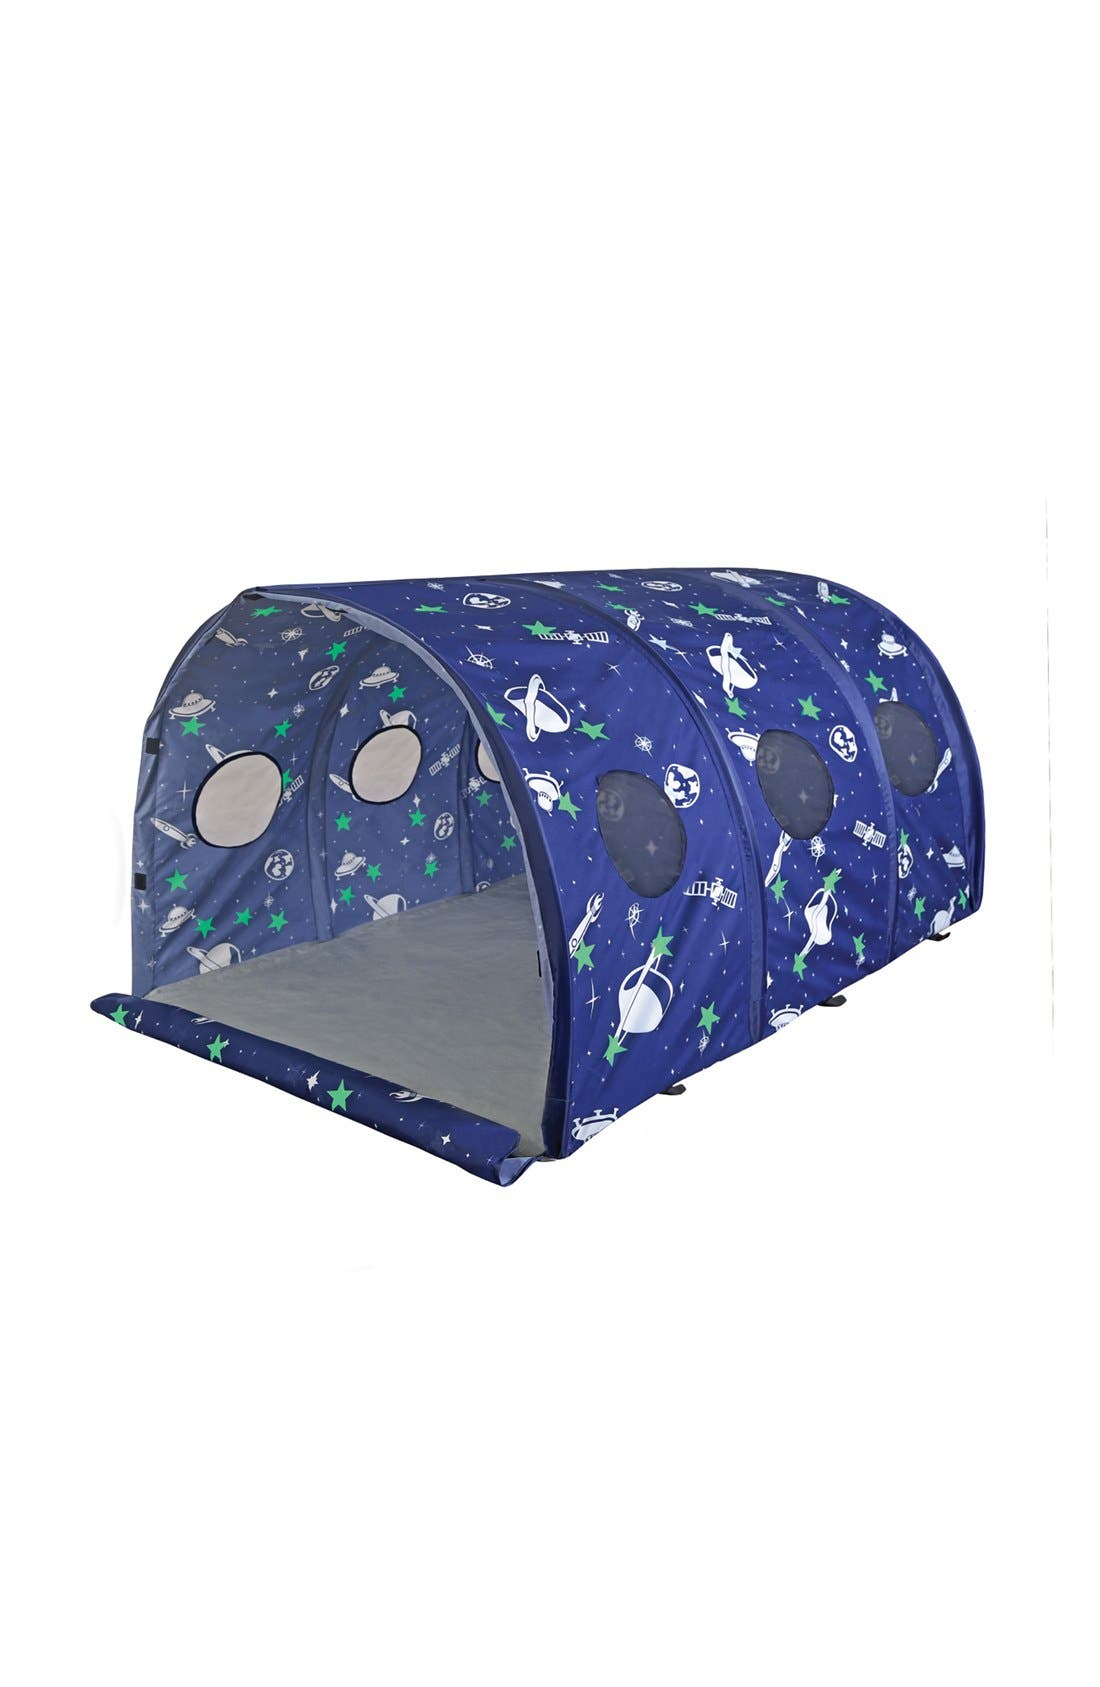 Pacific Play Tents u0027Space Capsuleu0027 Glow in the Dark Tent  sc 1 st  Nordstrom & Kidsu0027 Pacific Play Tents Apparel: T-Shirts Jeans Pants u0026 Hoodies ...